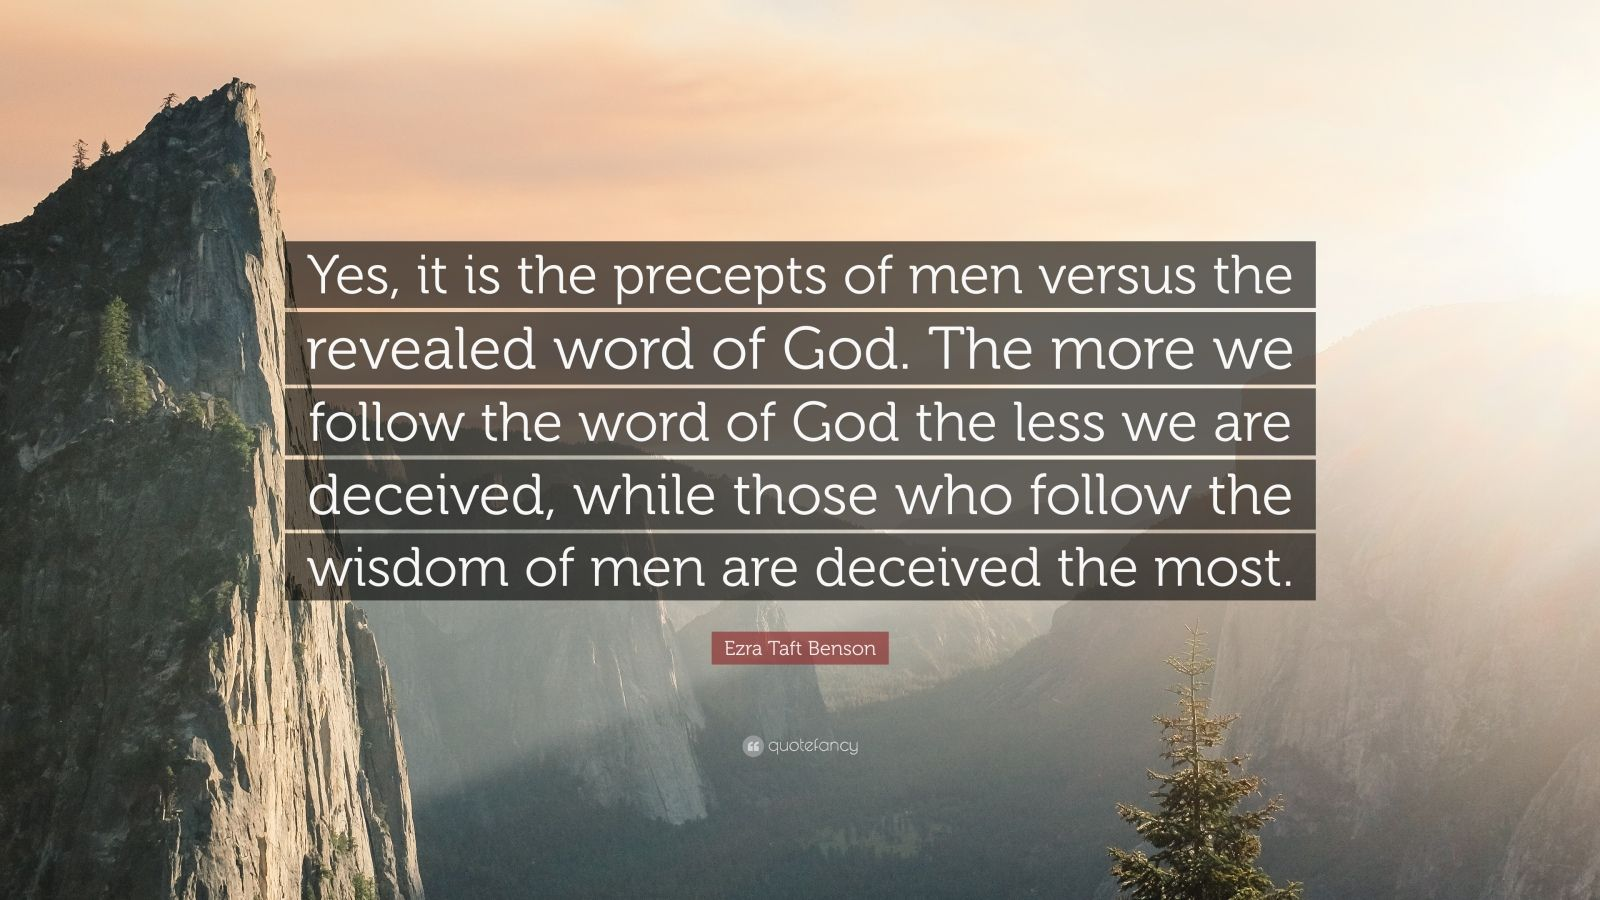 """Ezra Taft Benson Quote: """"Yes, it is the precepts of men versus the revealed word of God. The more we follow the word of God the less we are deceived, while those who follow the wisdom of men are deceived the most."""""""